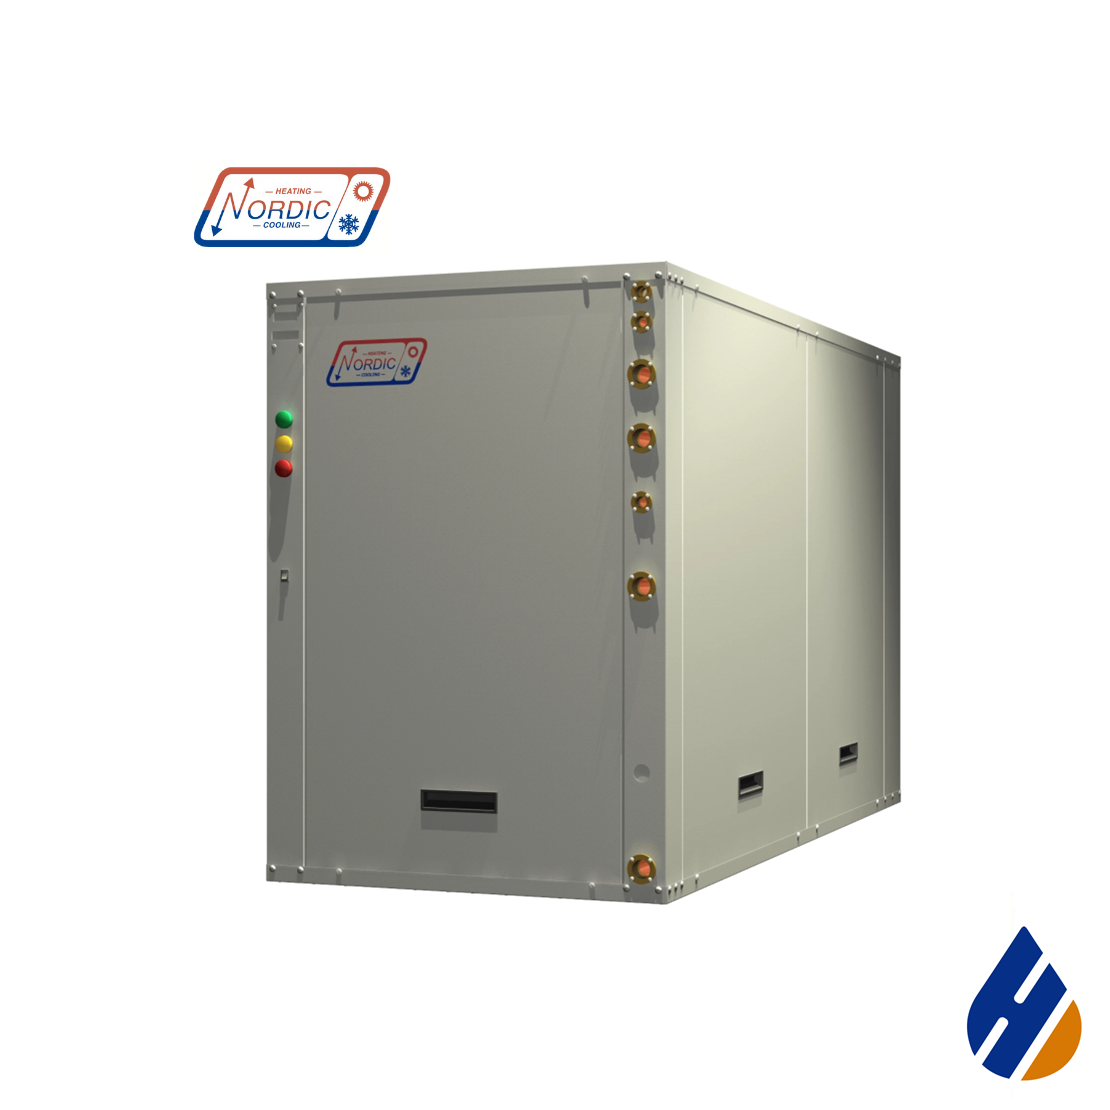 Nordic EMW Series Residential liquid-to-water heat pump.